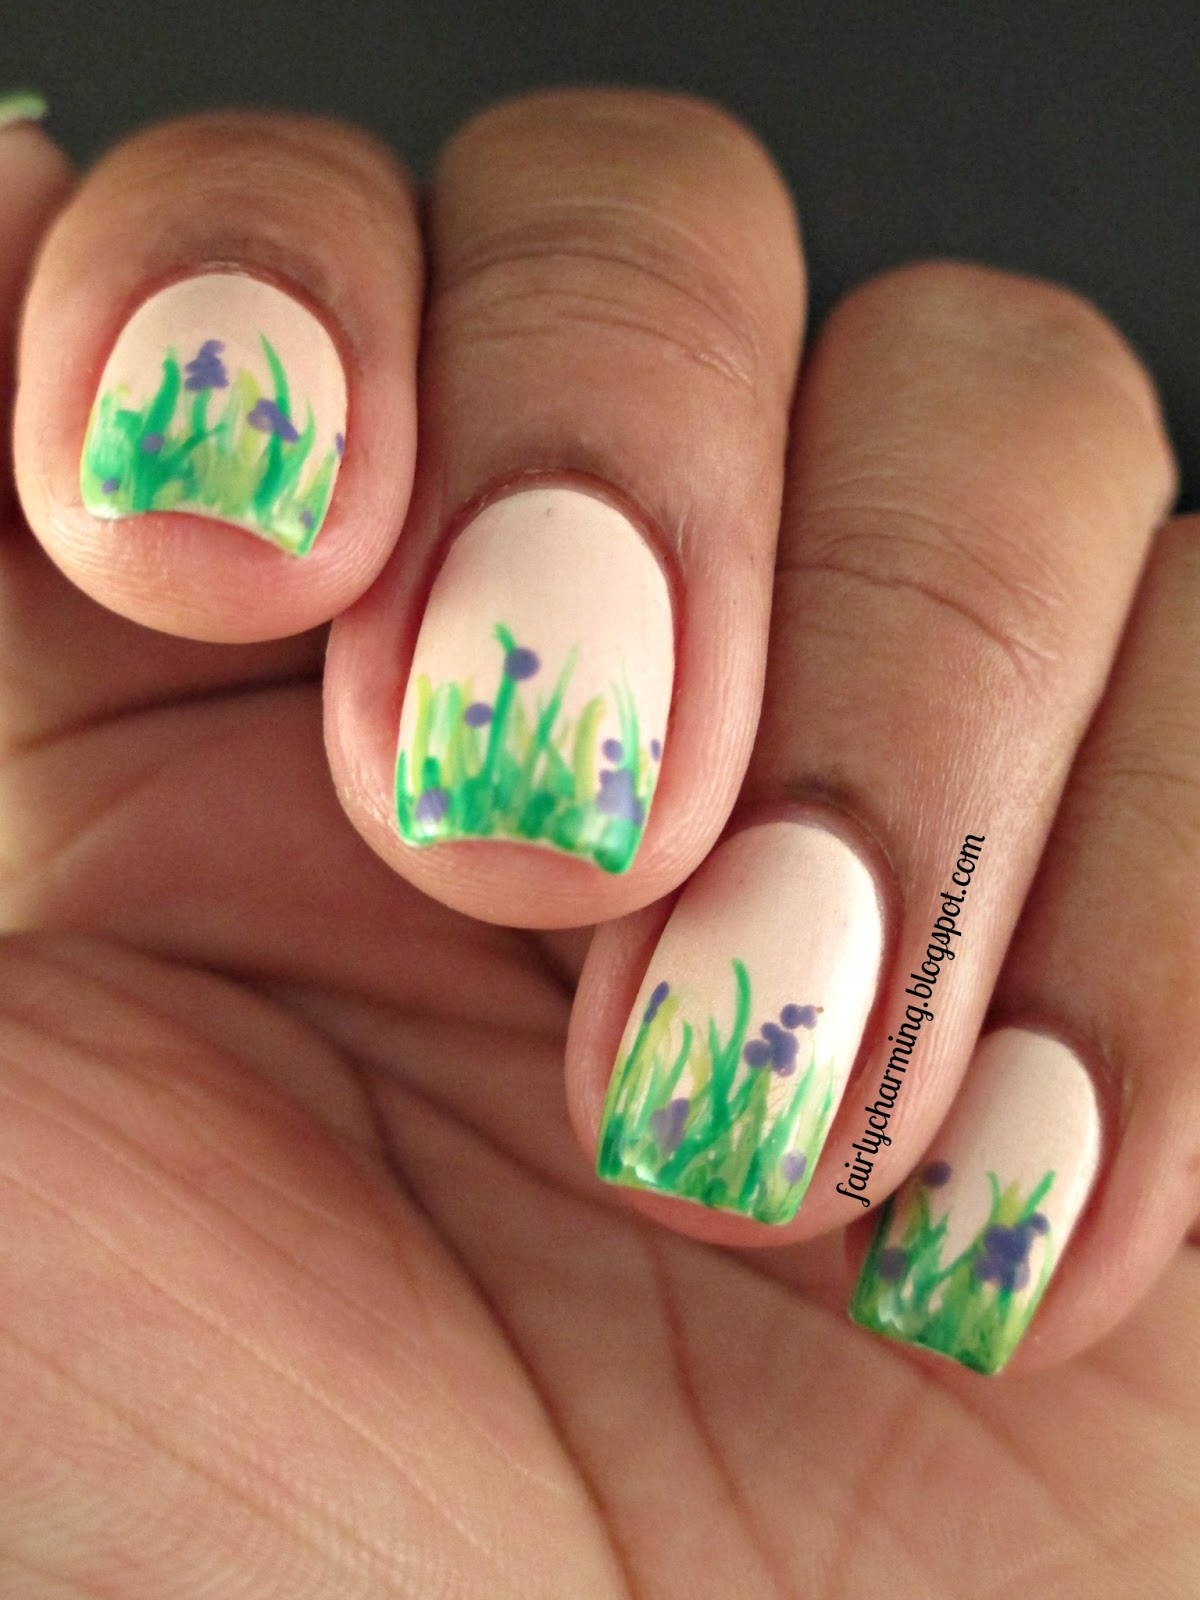 Forum on this topic: China Glaze Surprise Spring 2014 Collection, china-glaze-surprise-spring-2014-collection/